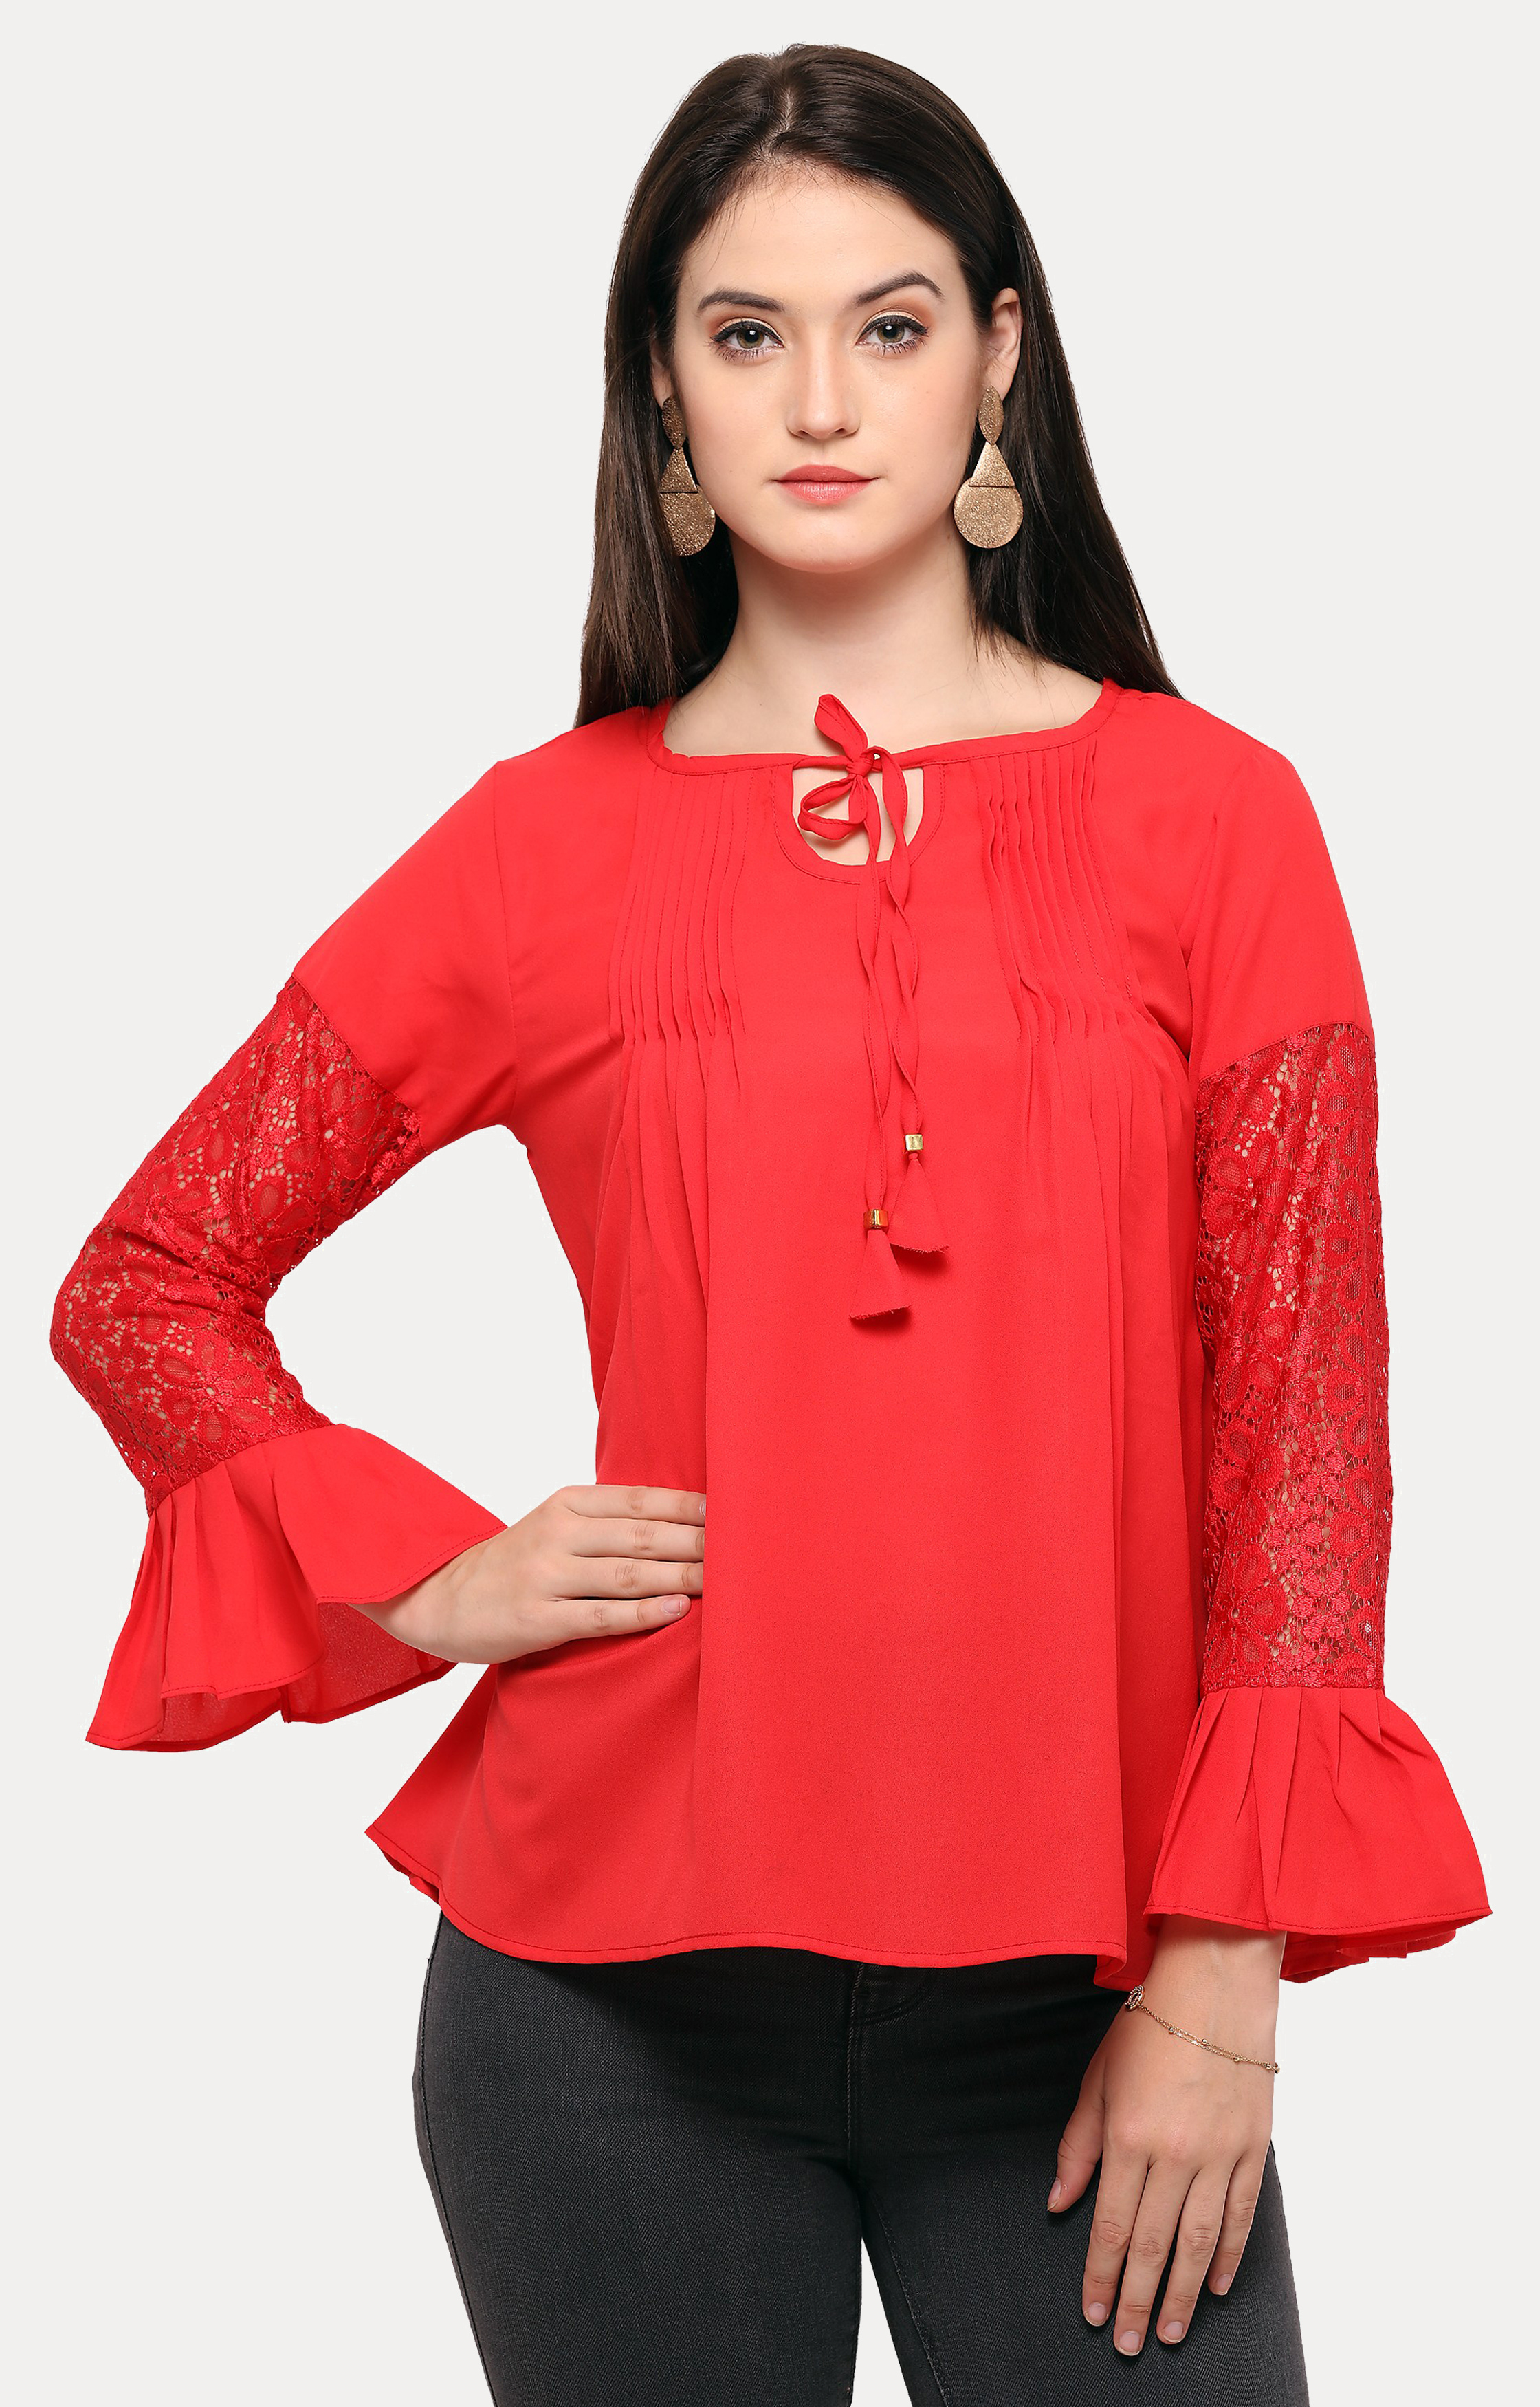 Smarty Pants   Red Solid Top